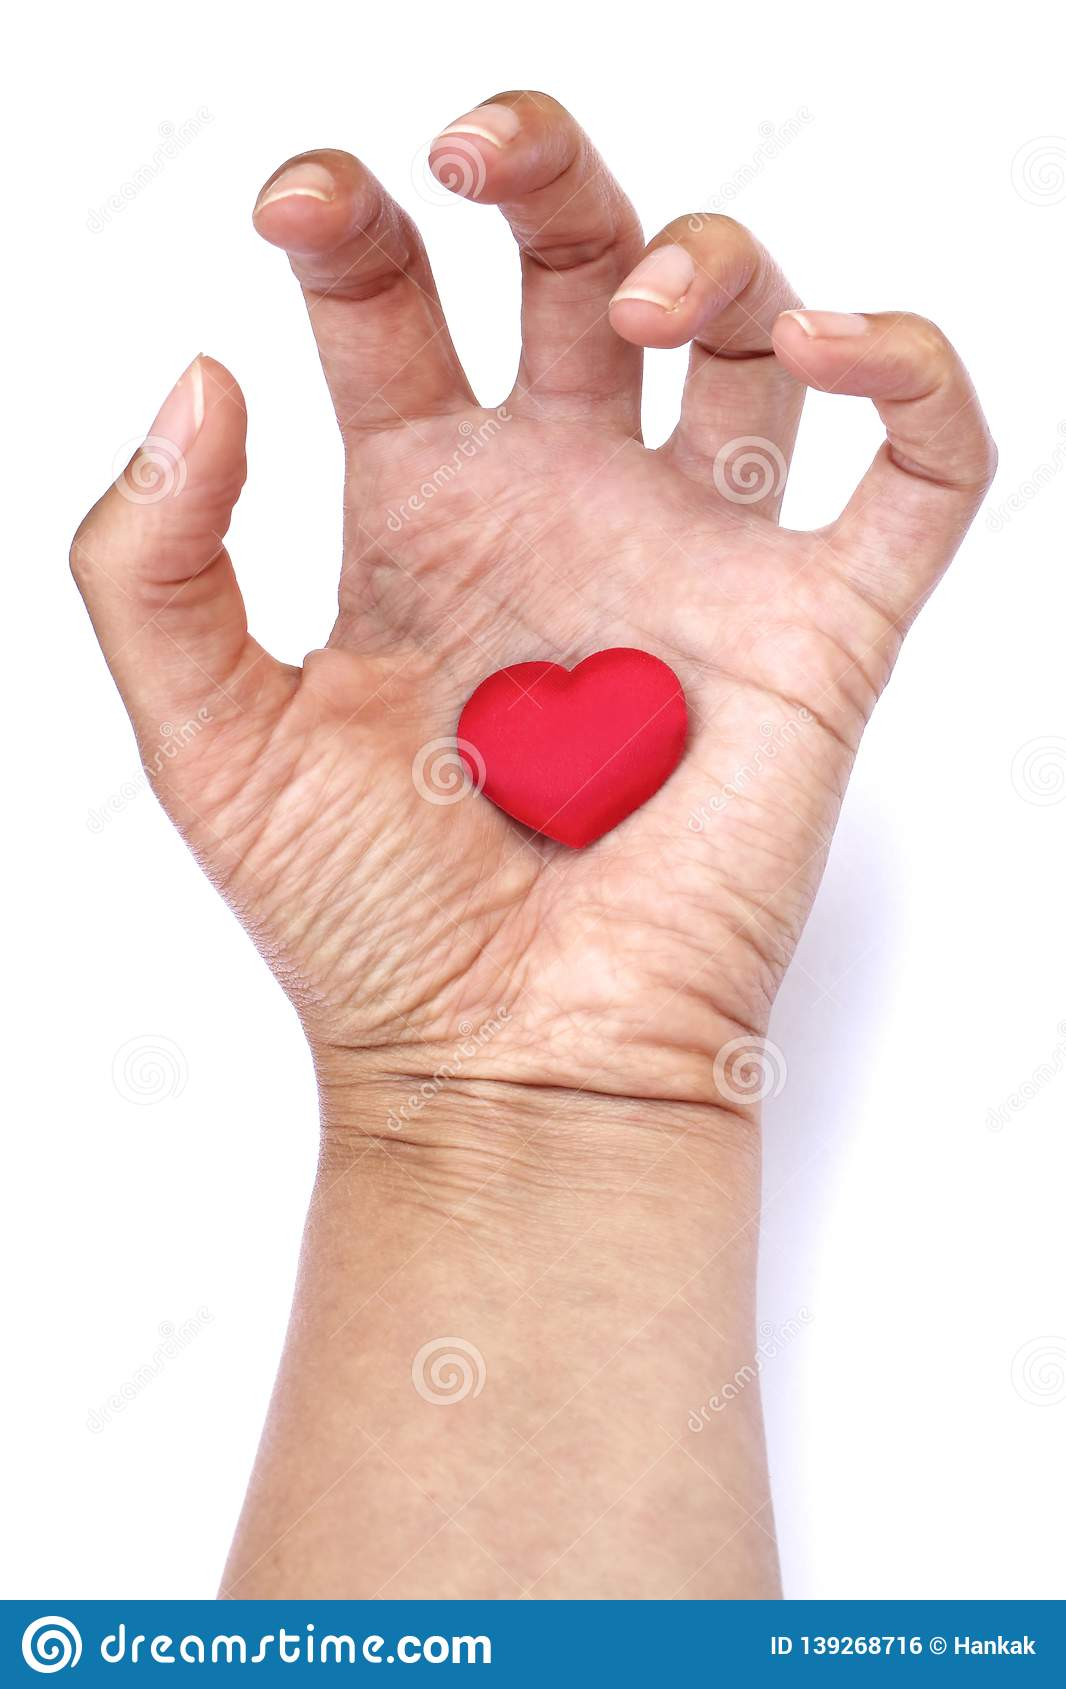 Heart in hand. Big red heart in woman´s open palm isolated on white background. Clenched fingers. Symbol of unhealthy love